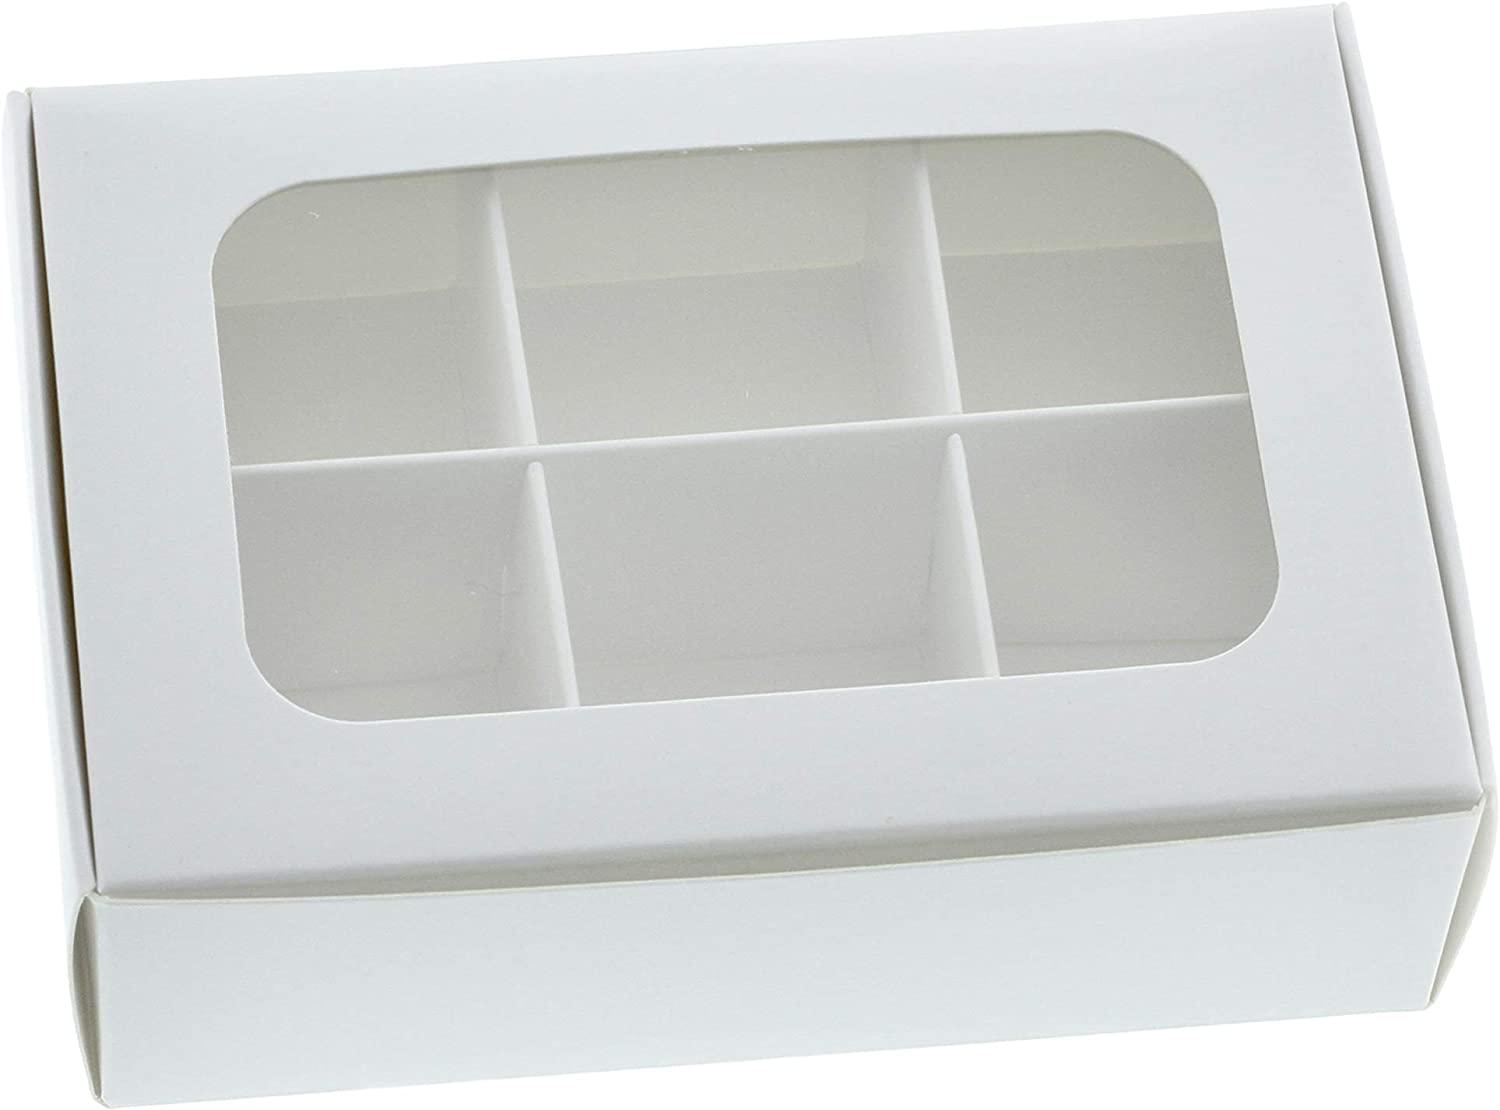 Gretel Mini Treat Boxes with Window and Dividers for Homemade Chocolates, Candy, and Confections. Size Small - 5 x 3.5 x 1.57 inches - Pack of 20 - White